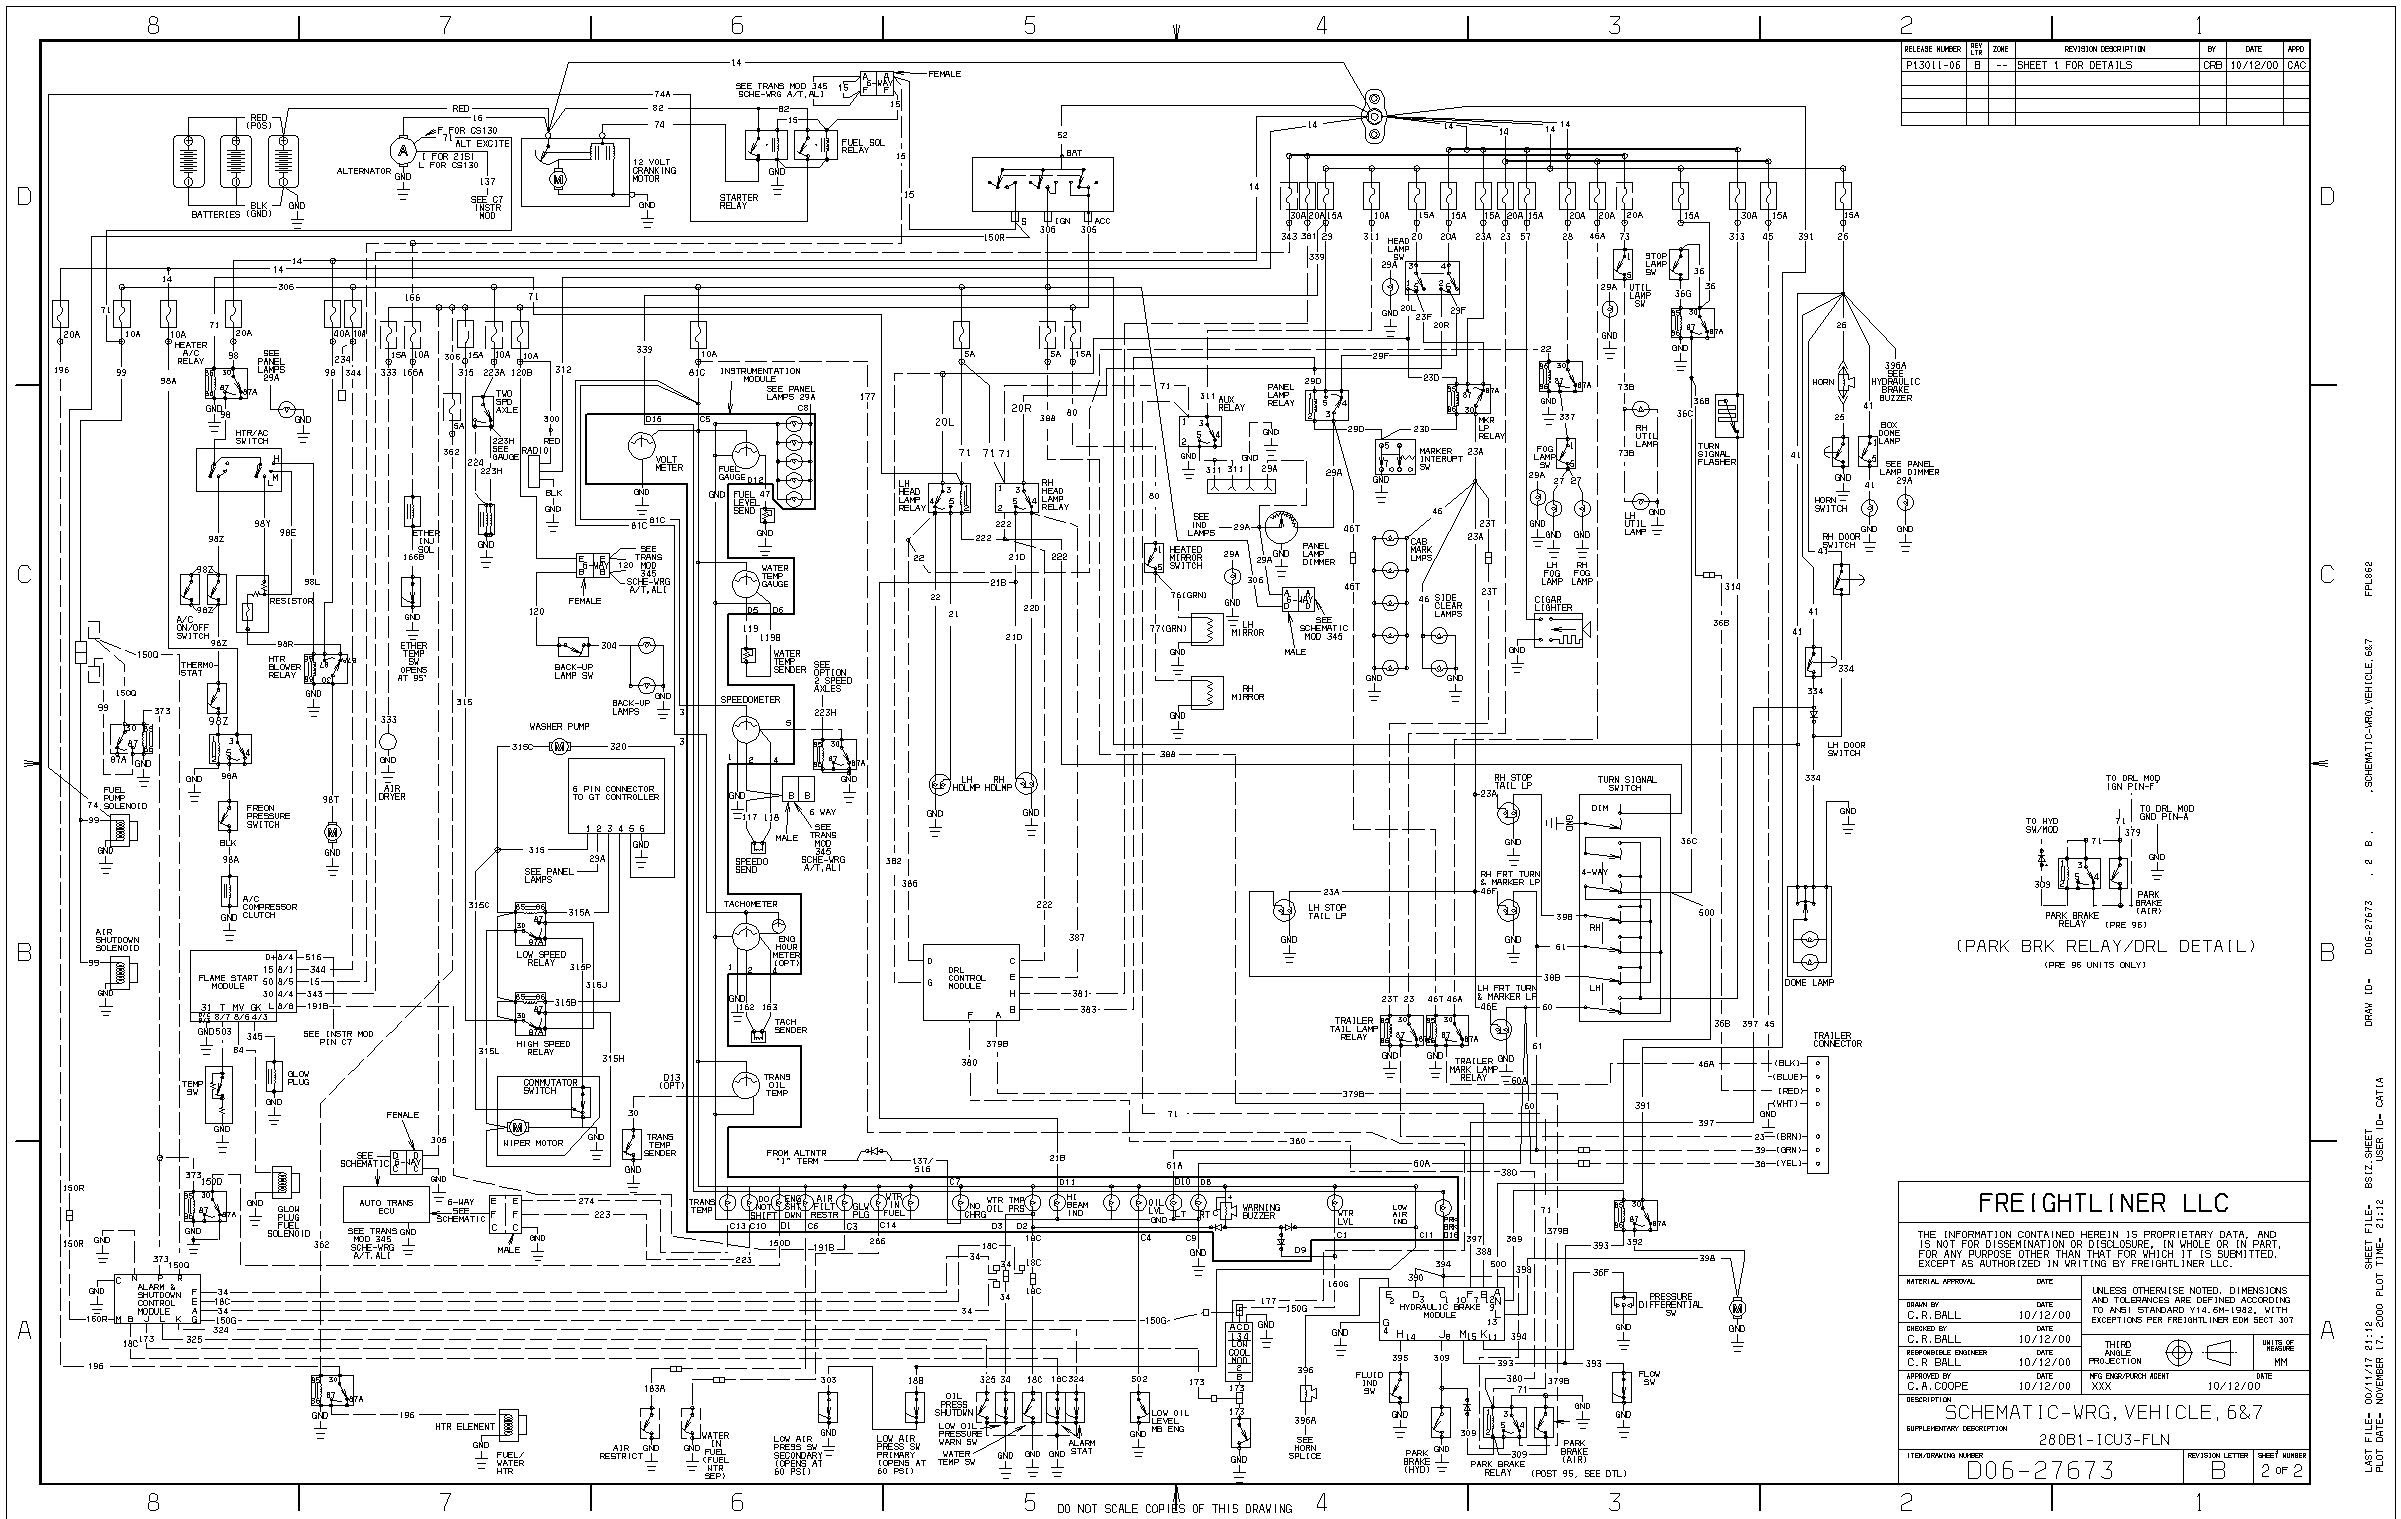 Circuit Electric For Guide: 2007 sterling truck wiring diagram